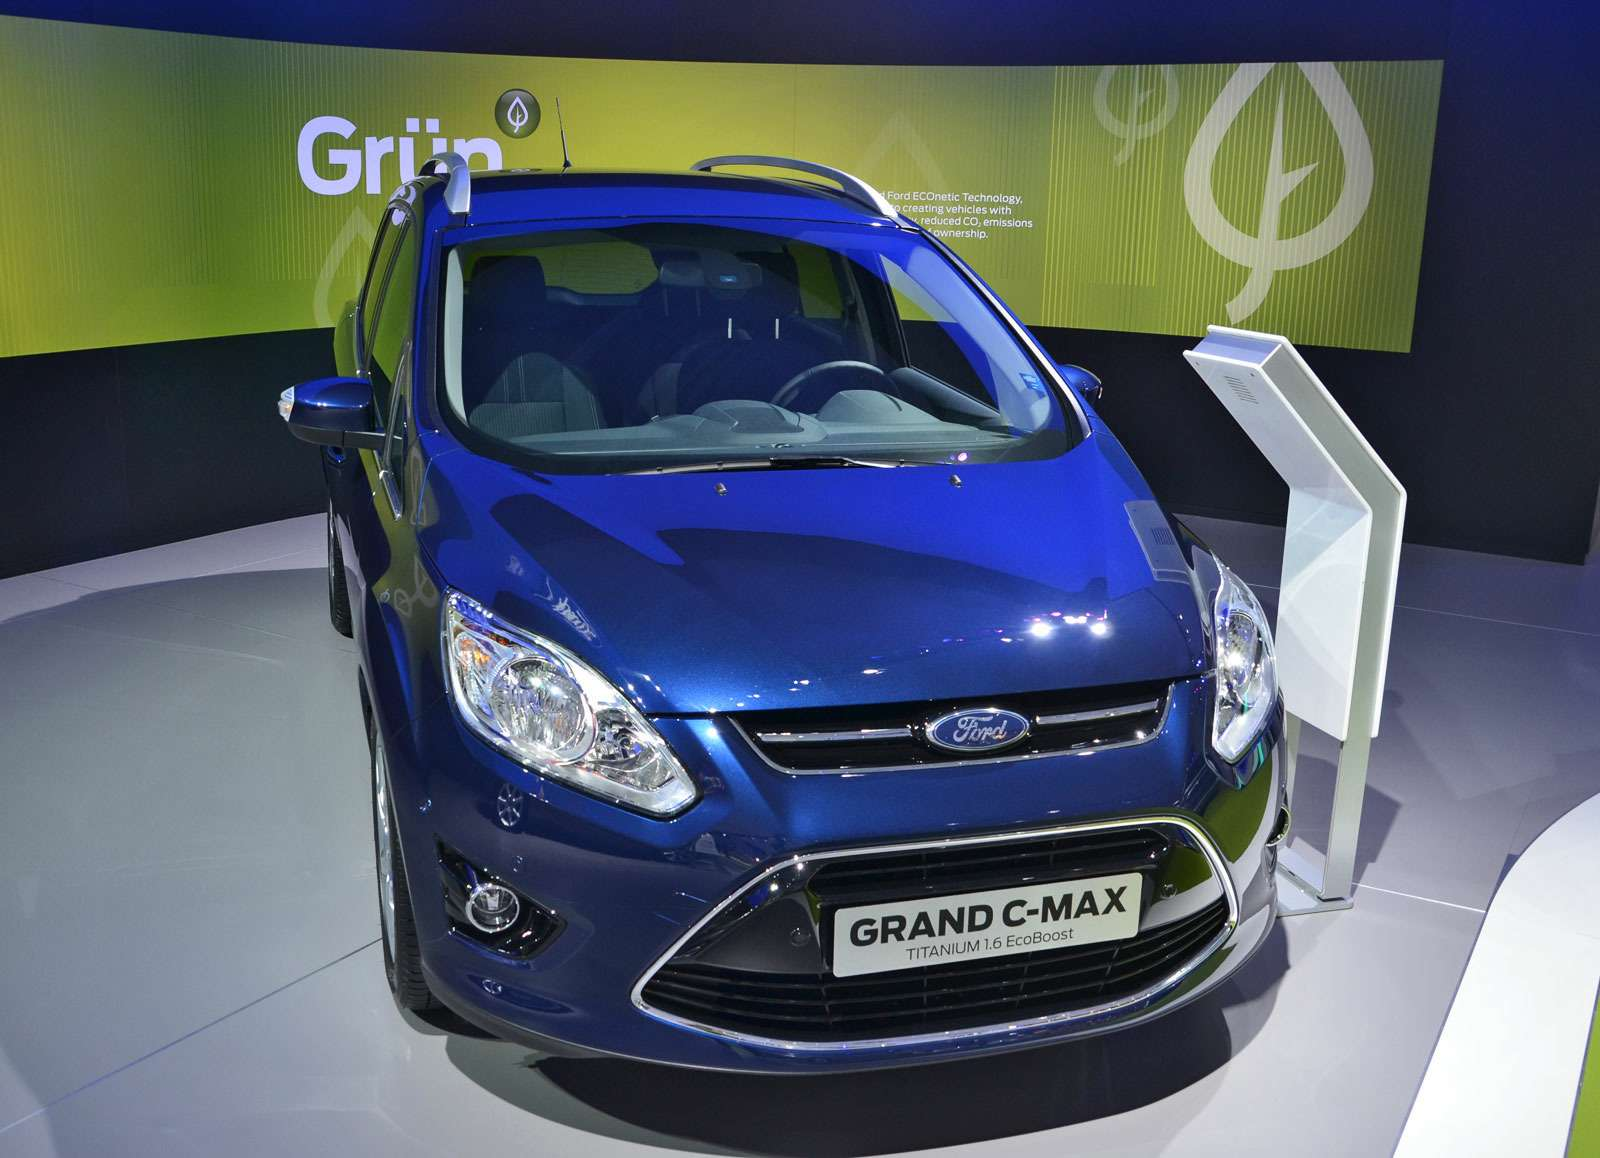 Ford-Grand-C-Max-(1.6-EcoBoost)